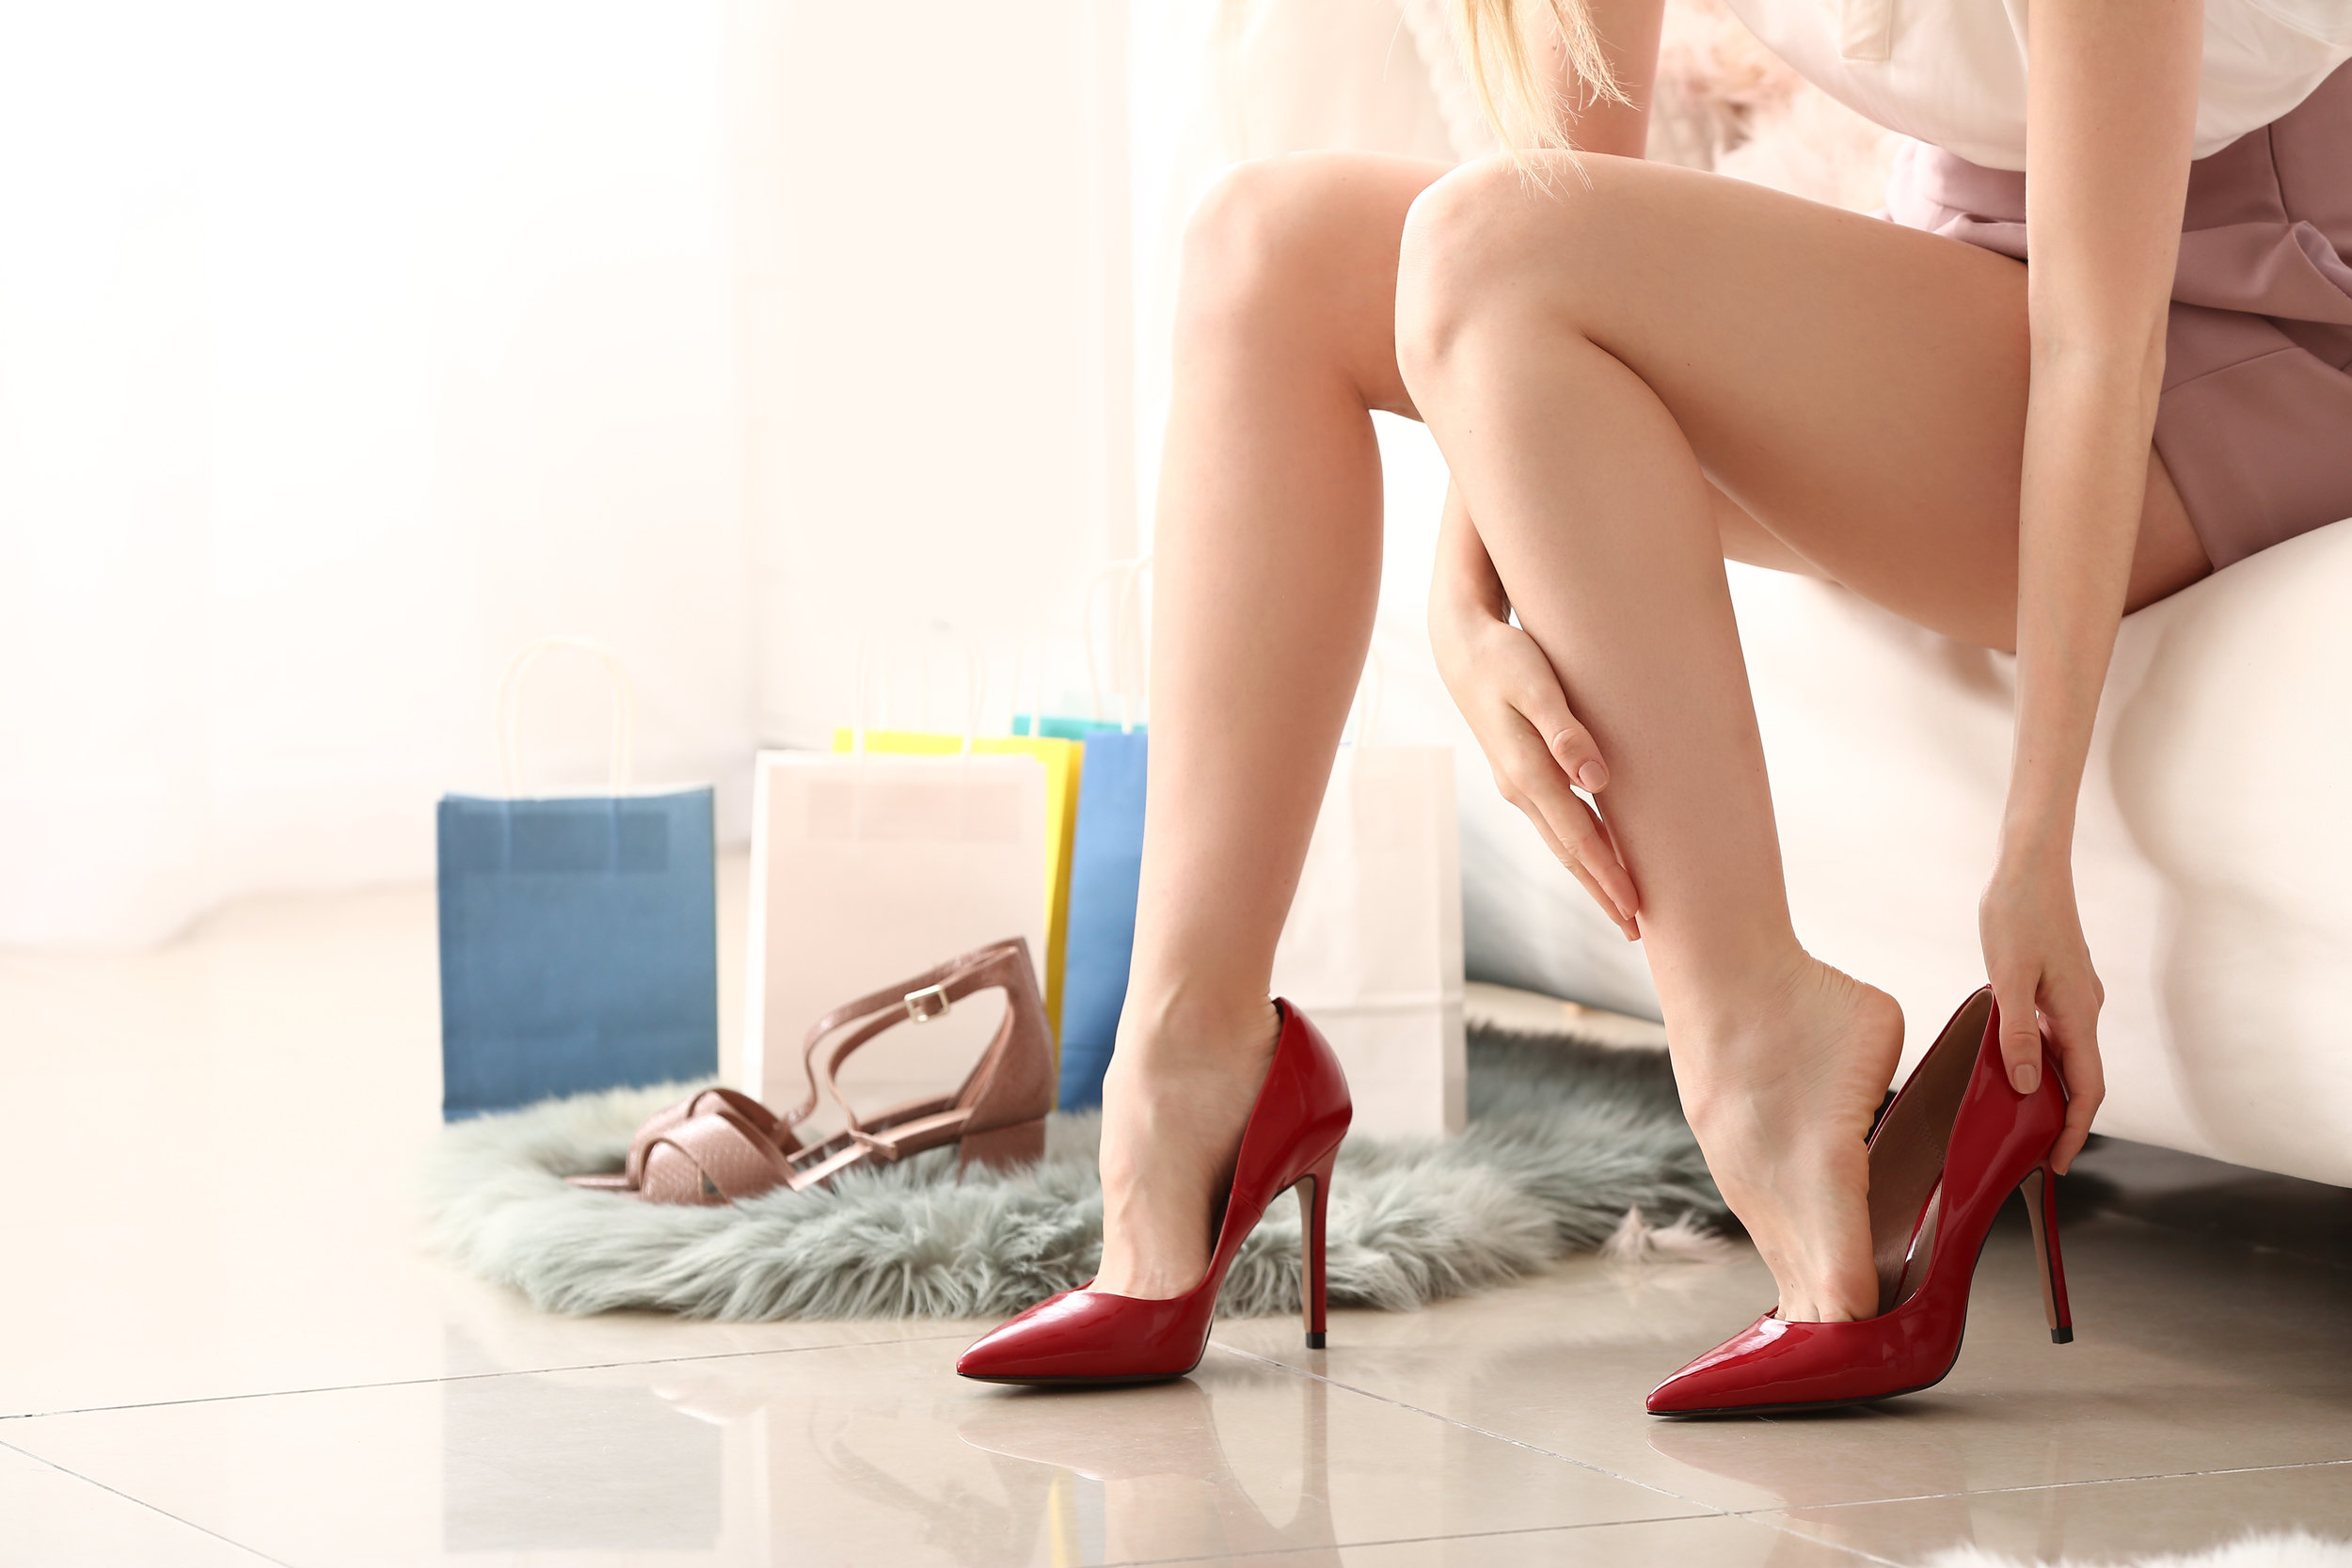 Young woman taking off high-heeled shoes at home